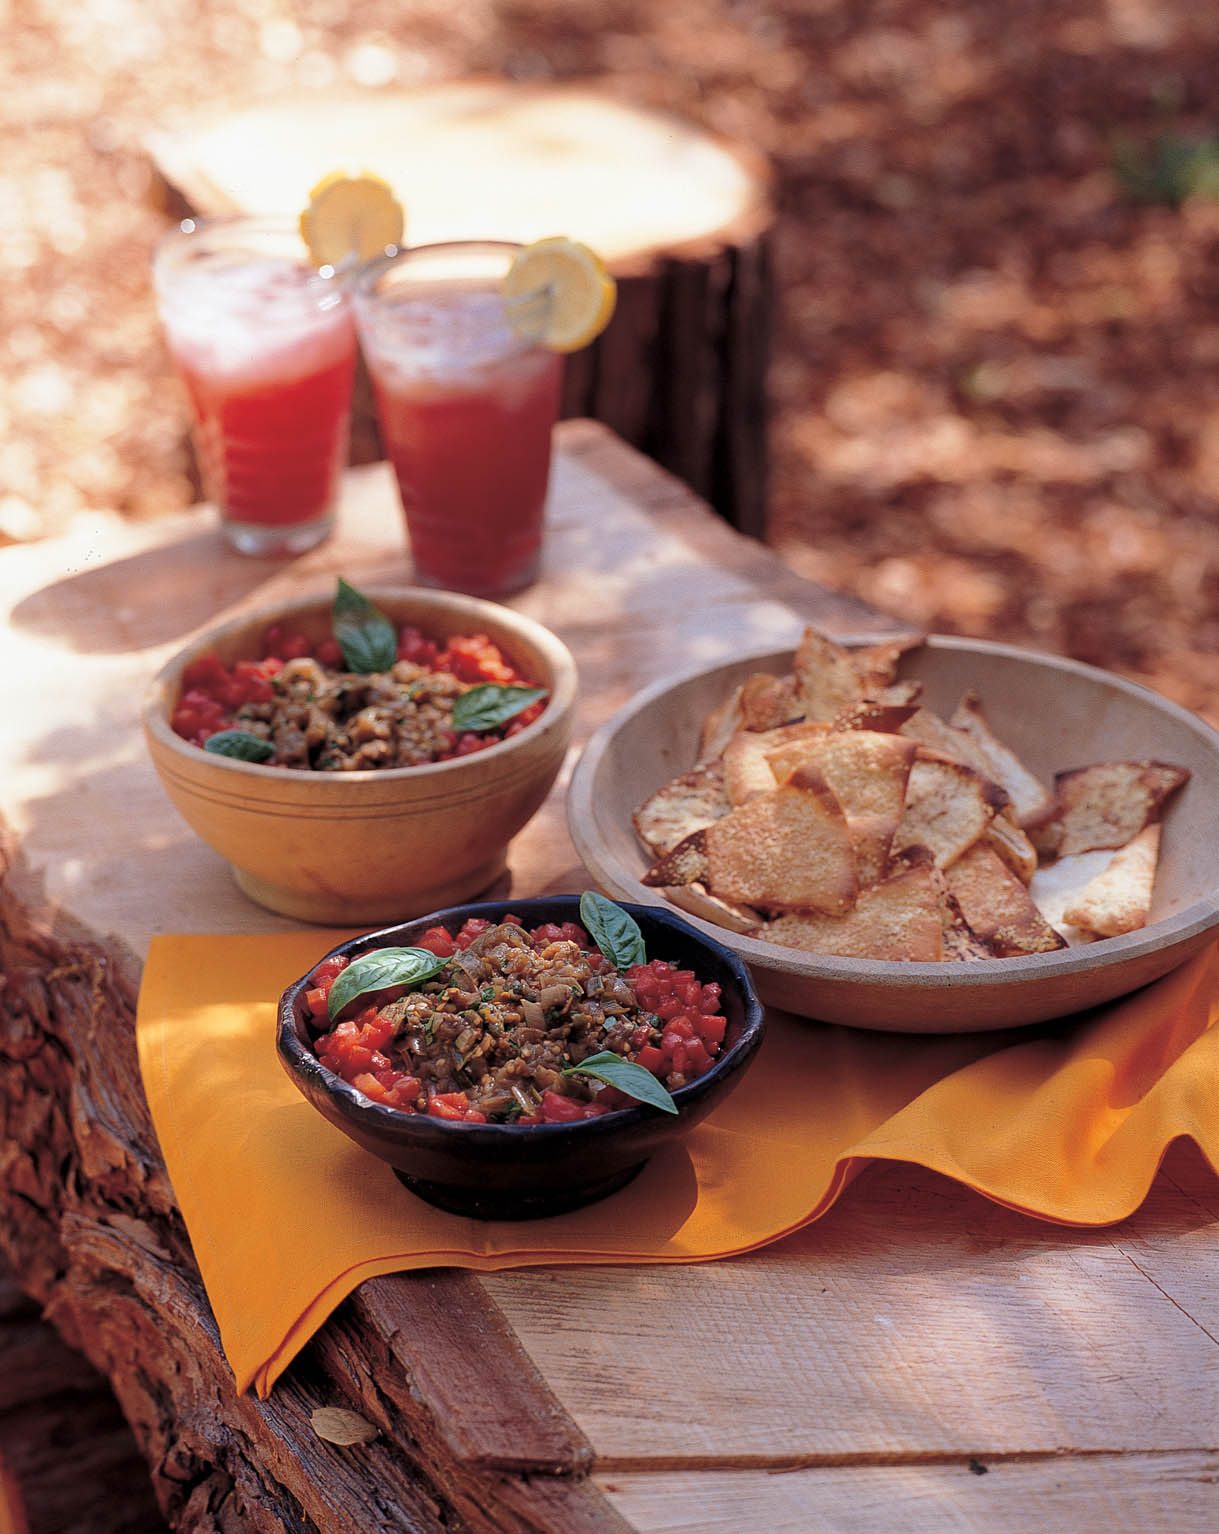 Roasted Eggplant Dip with Tomato Relish and Pita Toasts: A Mediterranean-style Dip for the Fourth of July